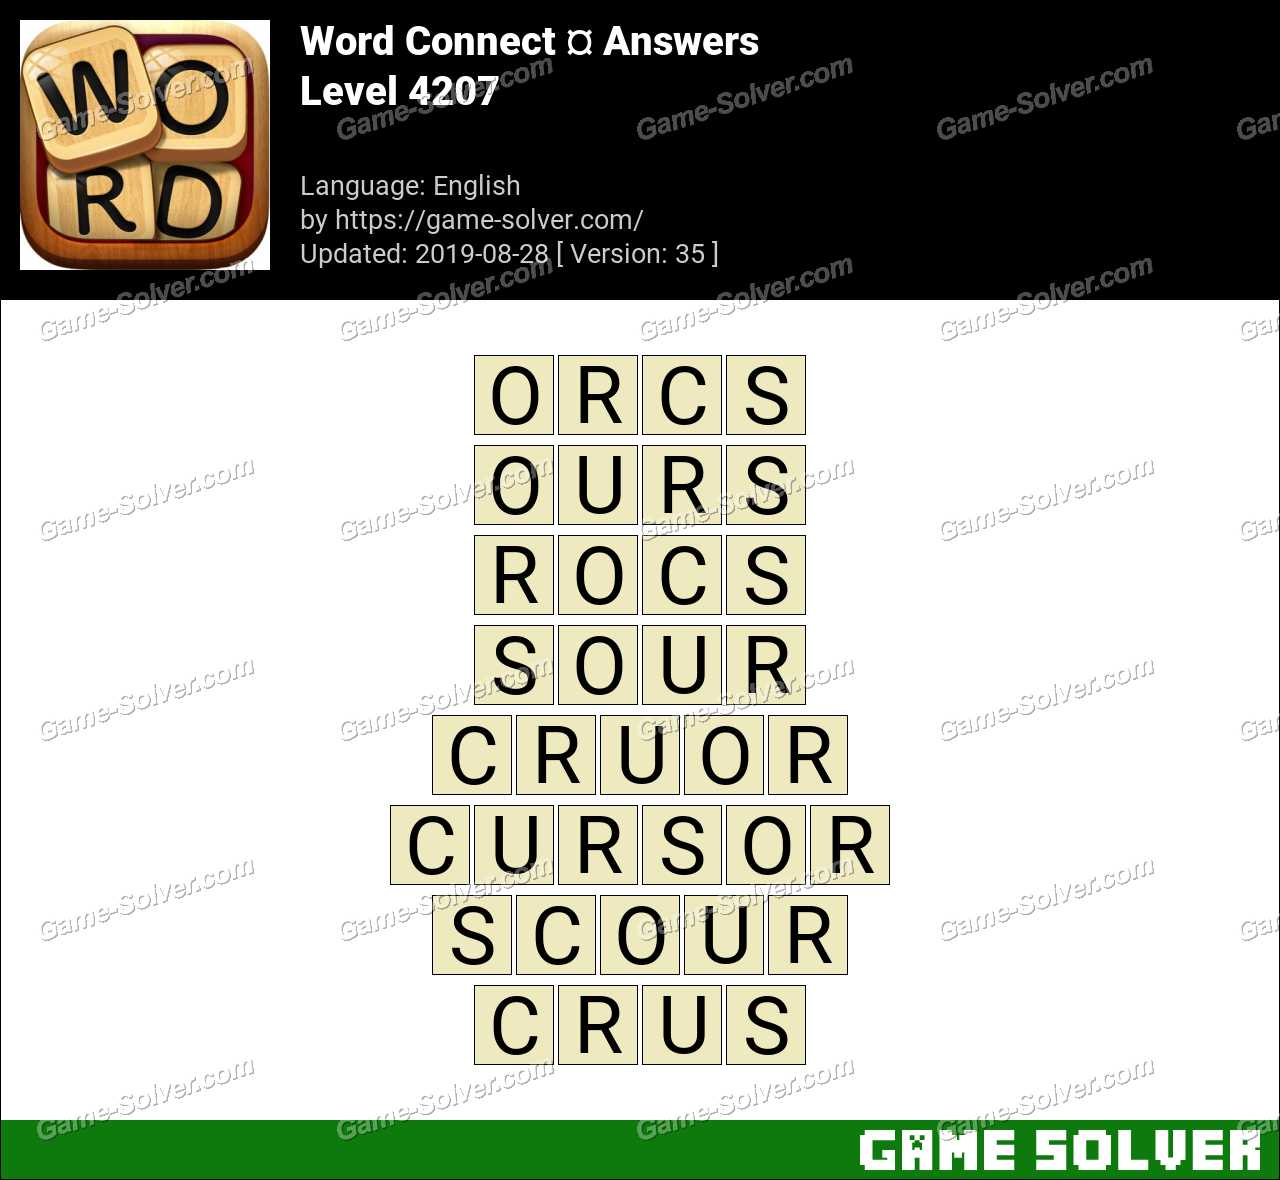 Word Connect Level 4207 Answers